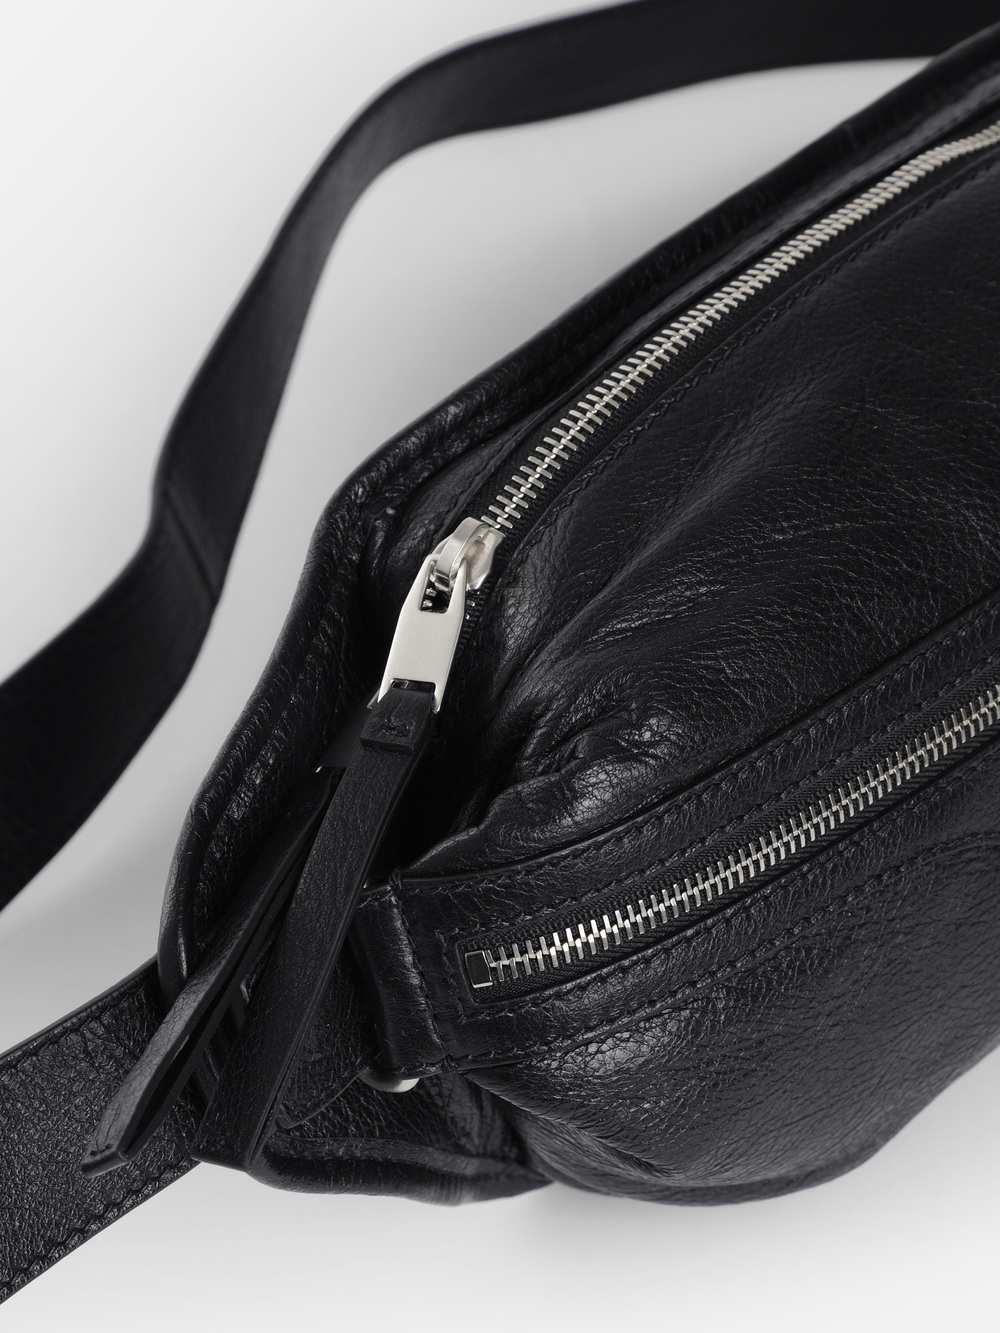 BLACK CLASSIC NEO FANNY PACK  ボディバッグ